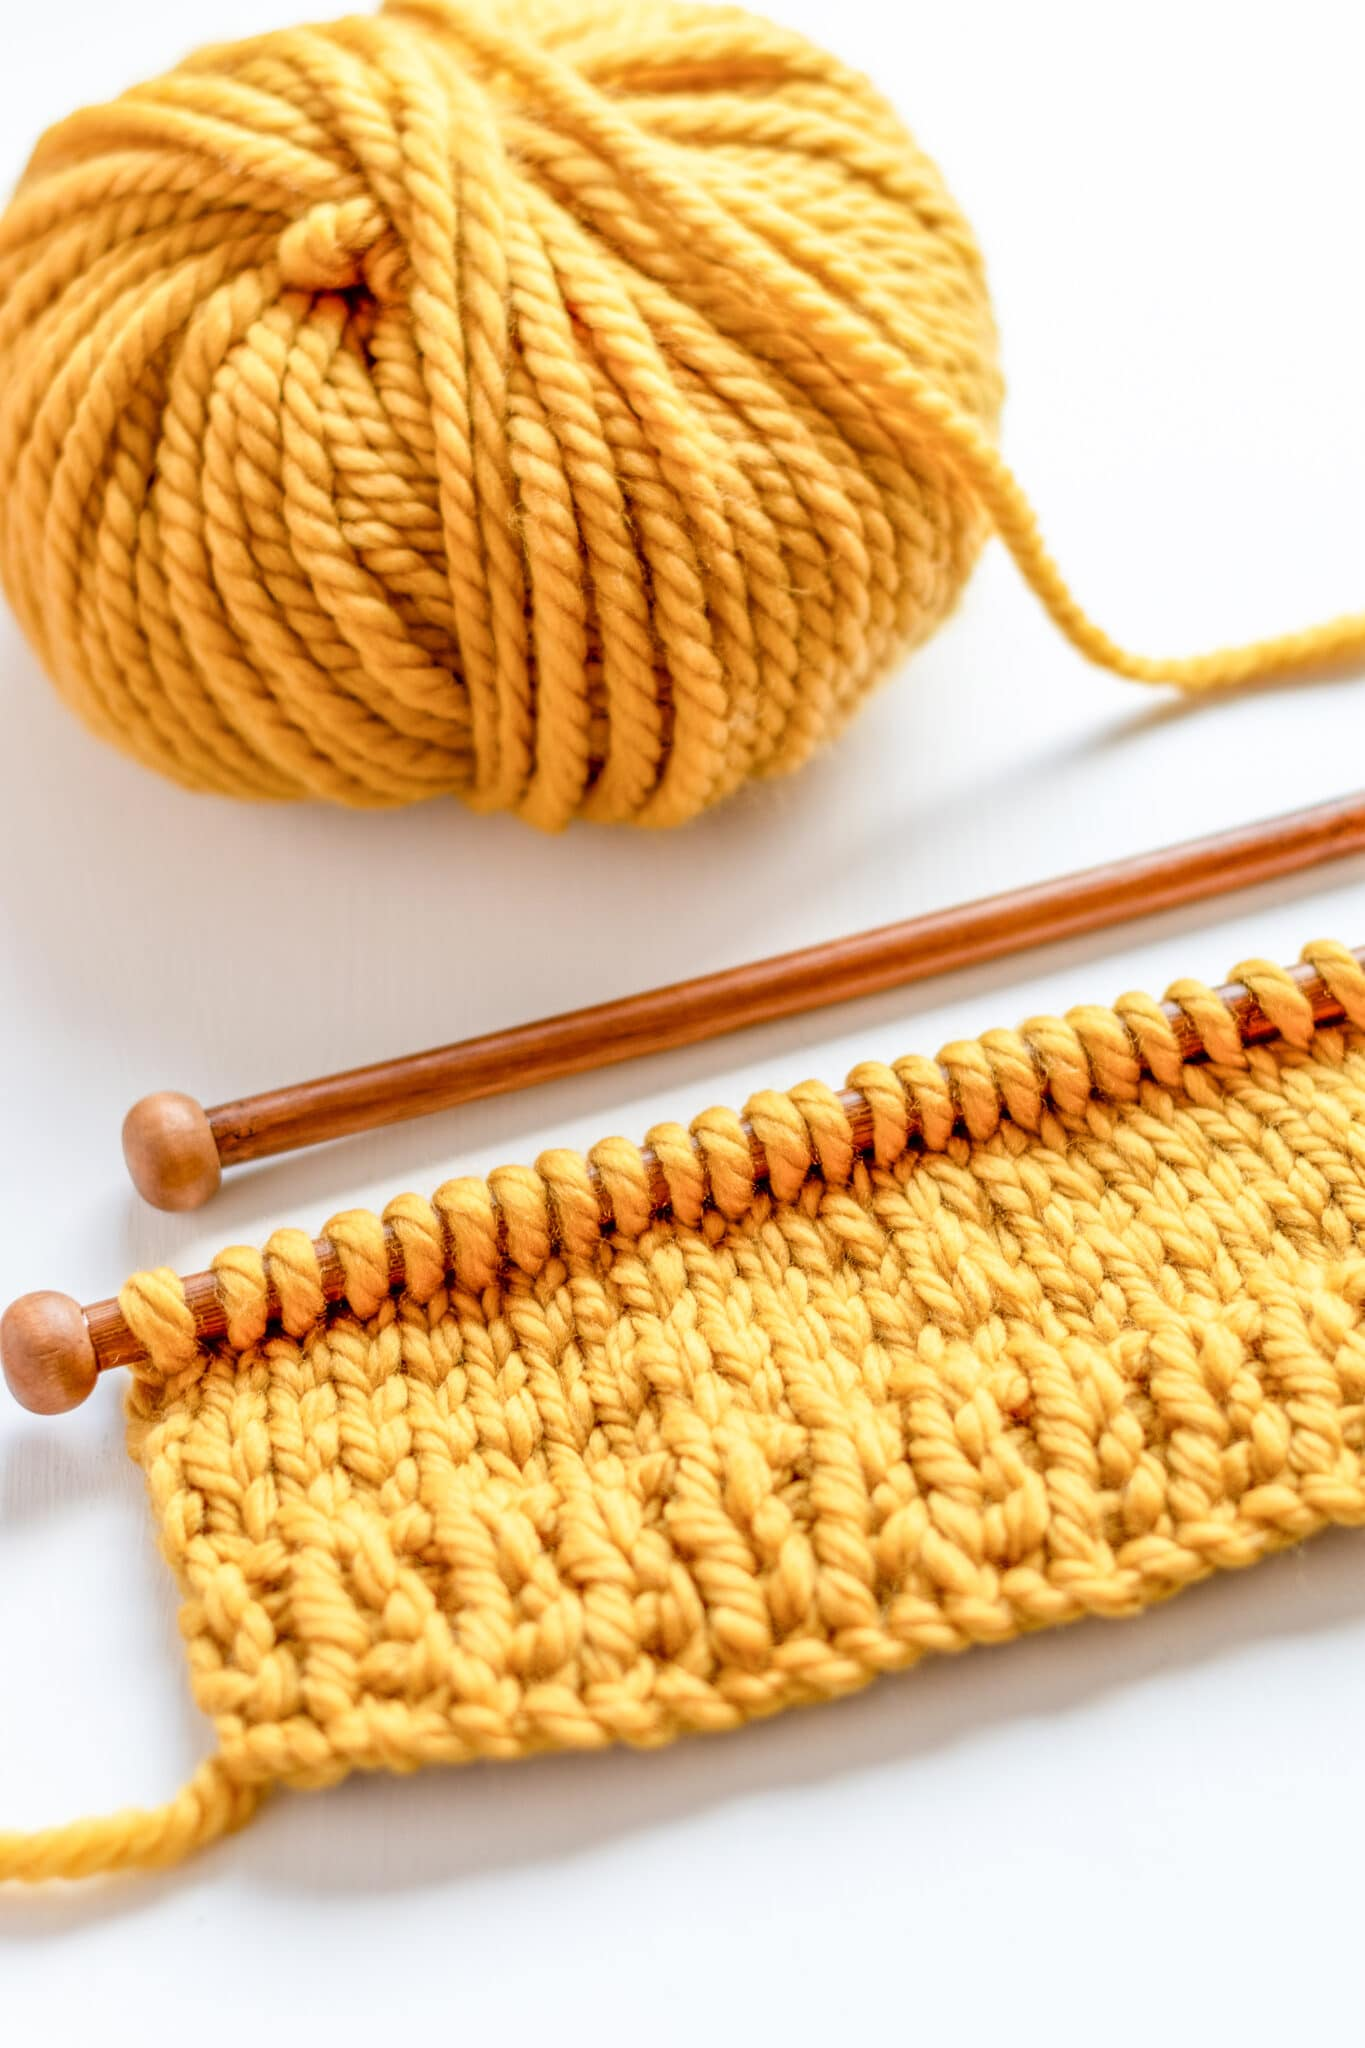 A bright yellow ball of chunky wool being knit on a wooden knitting needle.